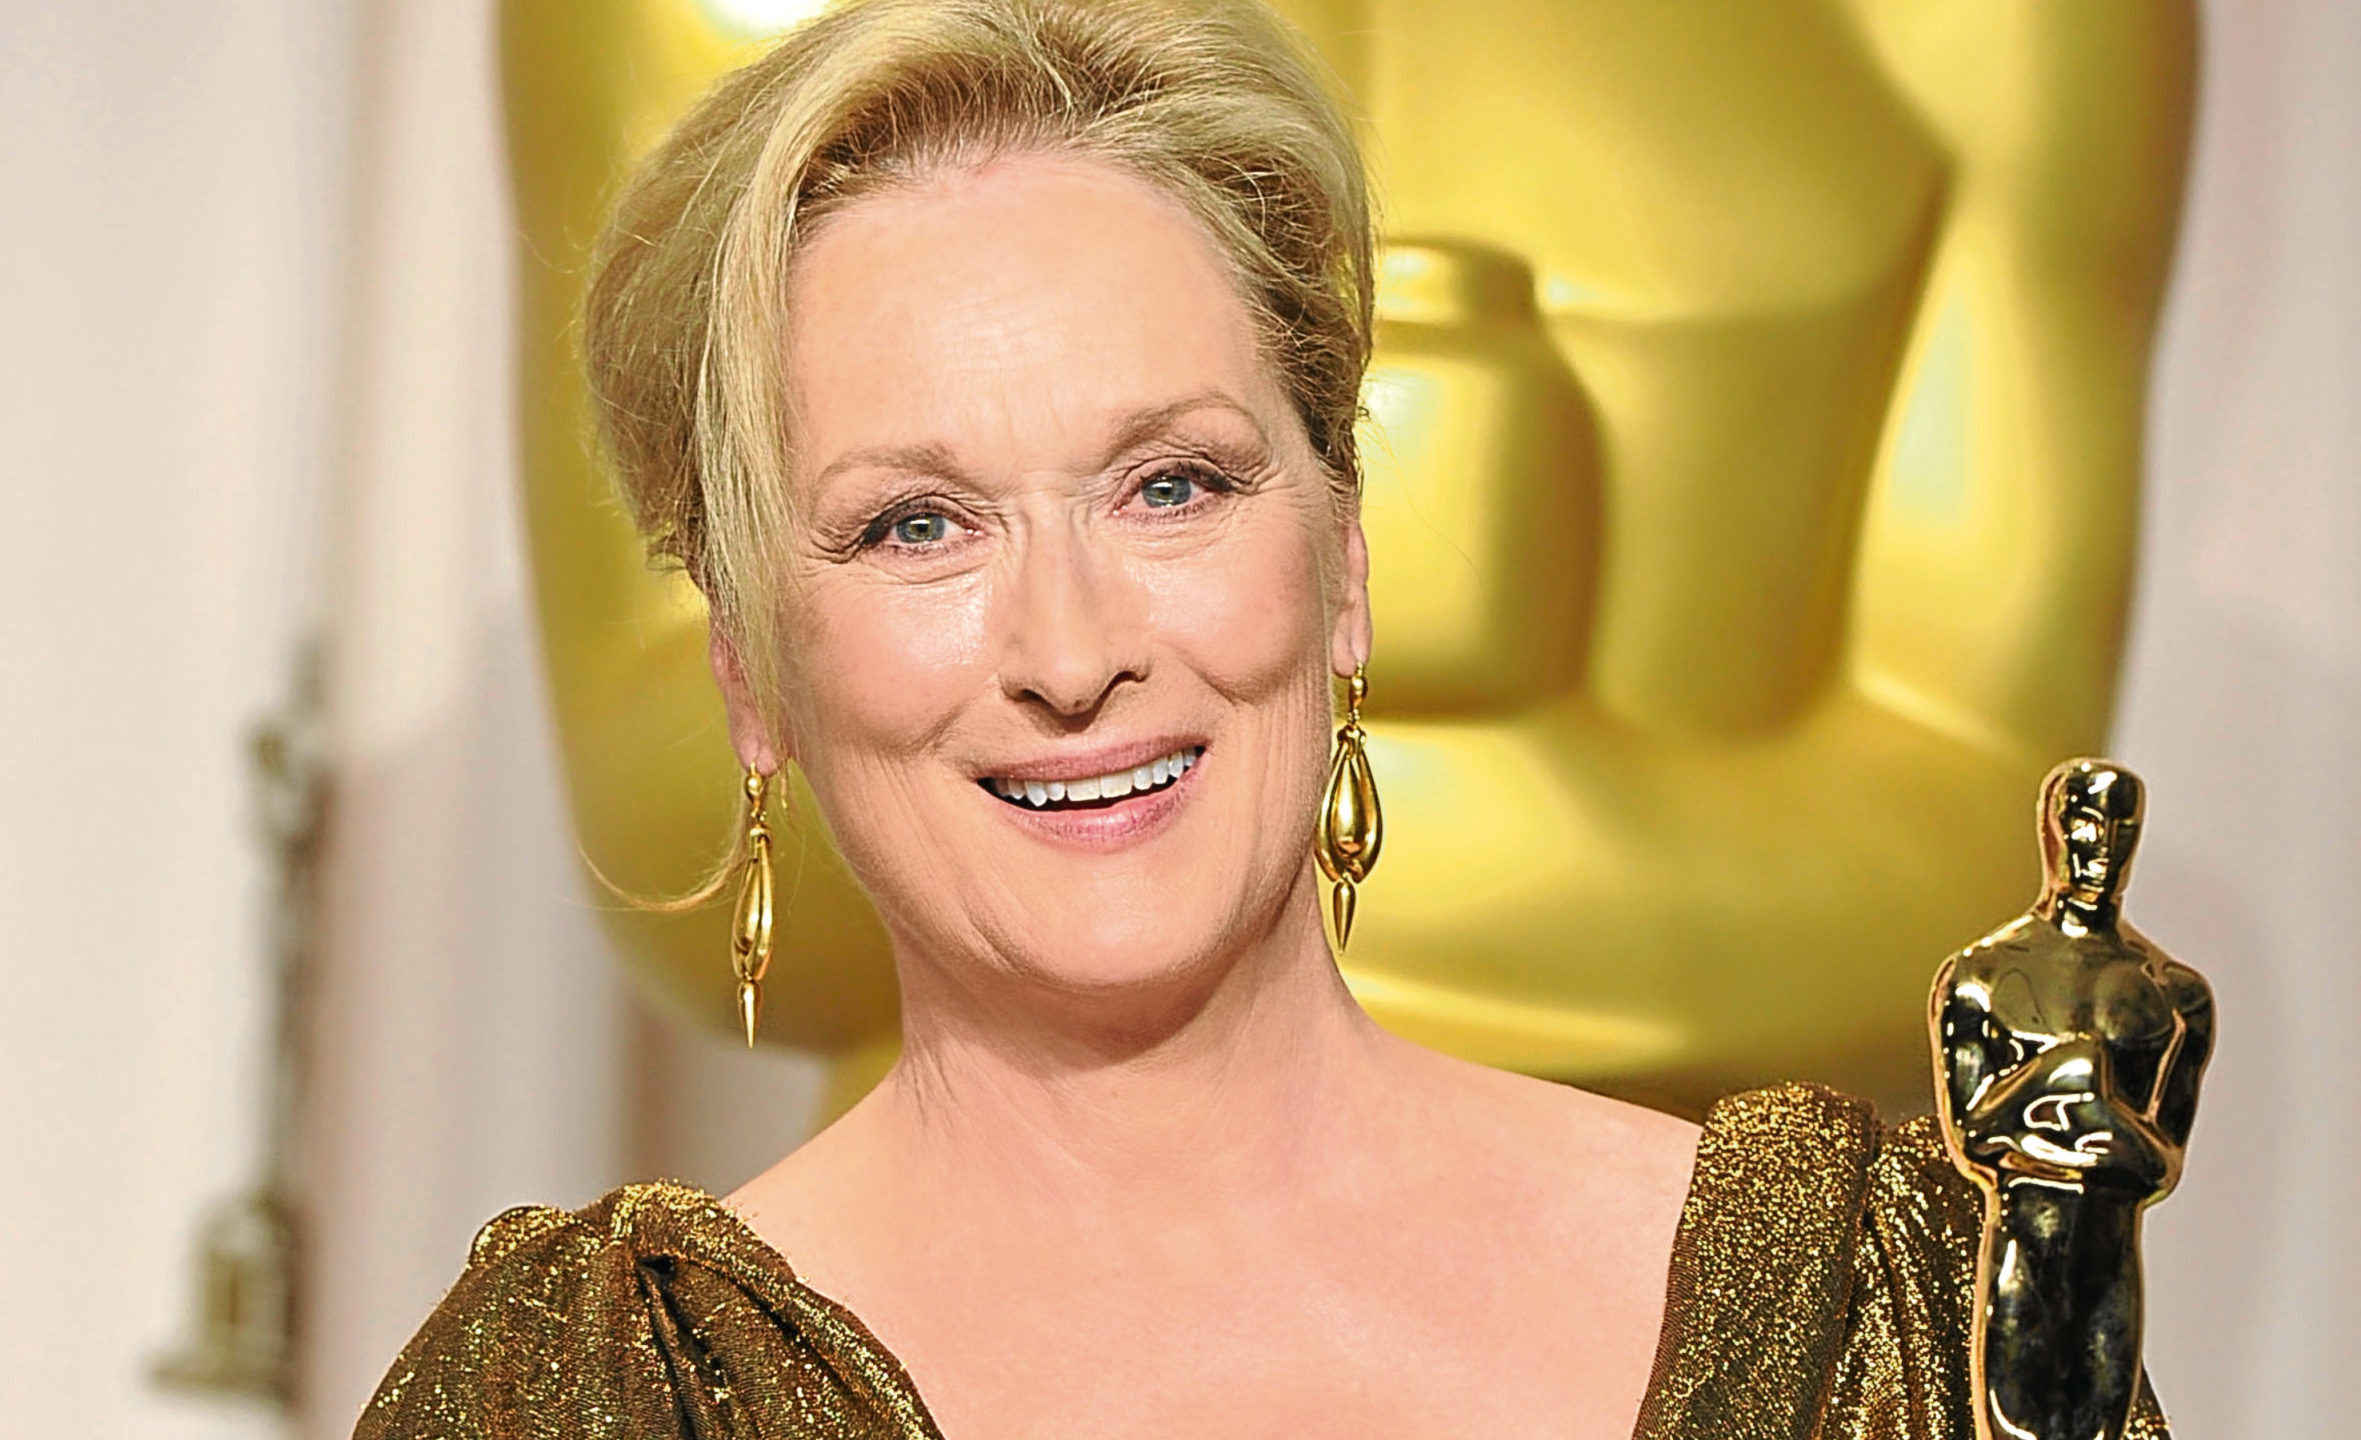 Meryl Streep has won three Oscars